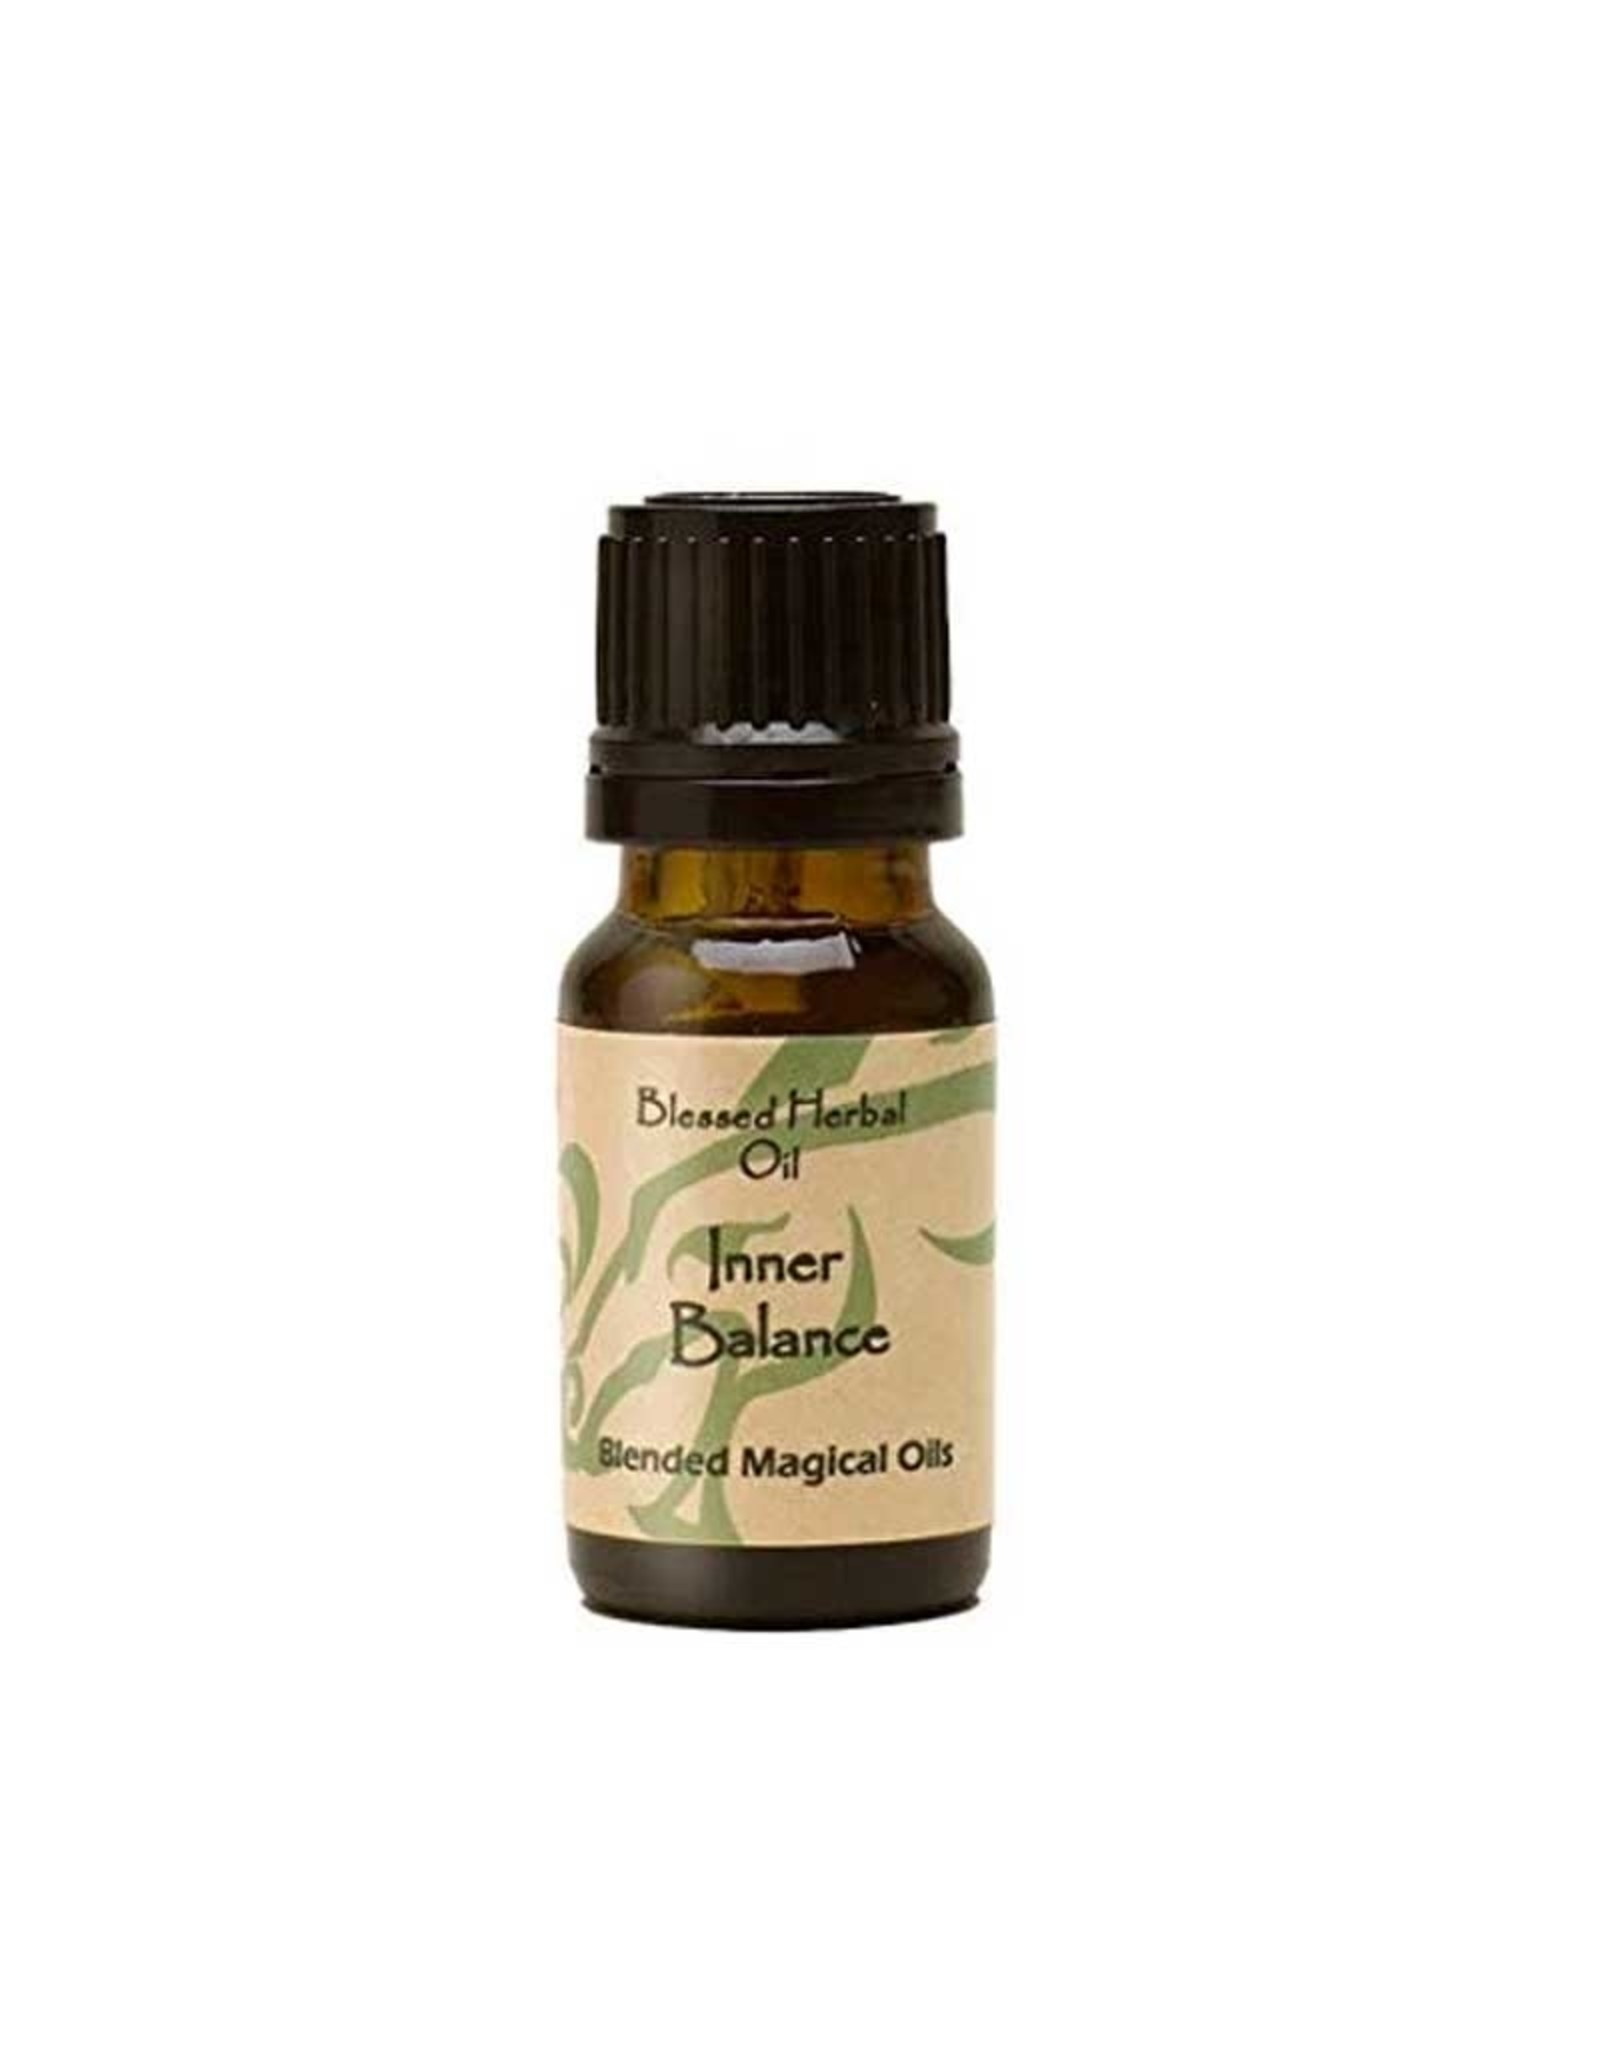 Coventry Creations Blessed Herbal Oil - Inner Balance